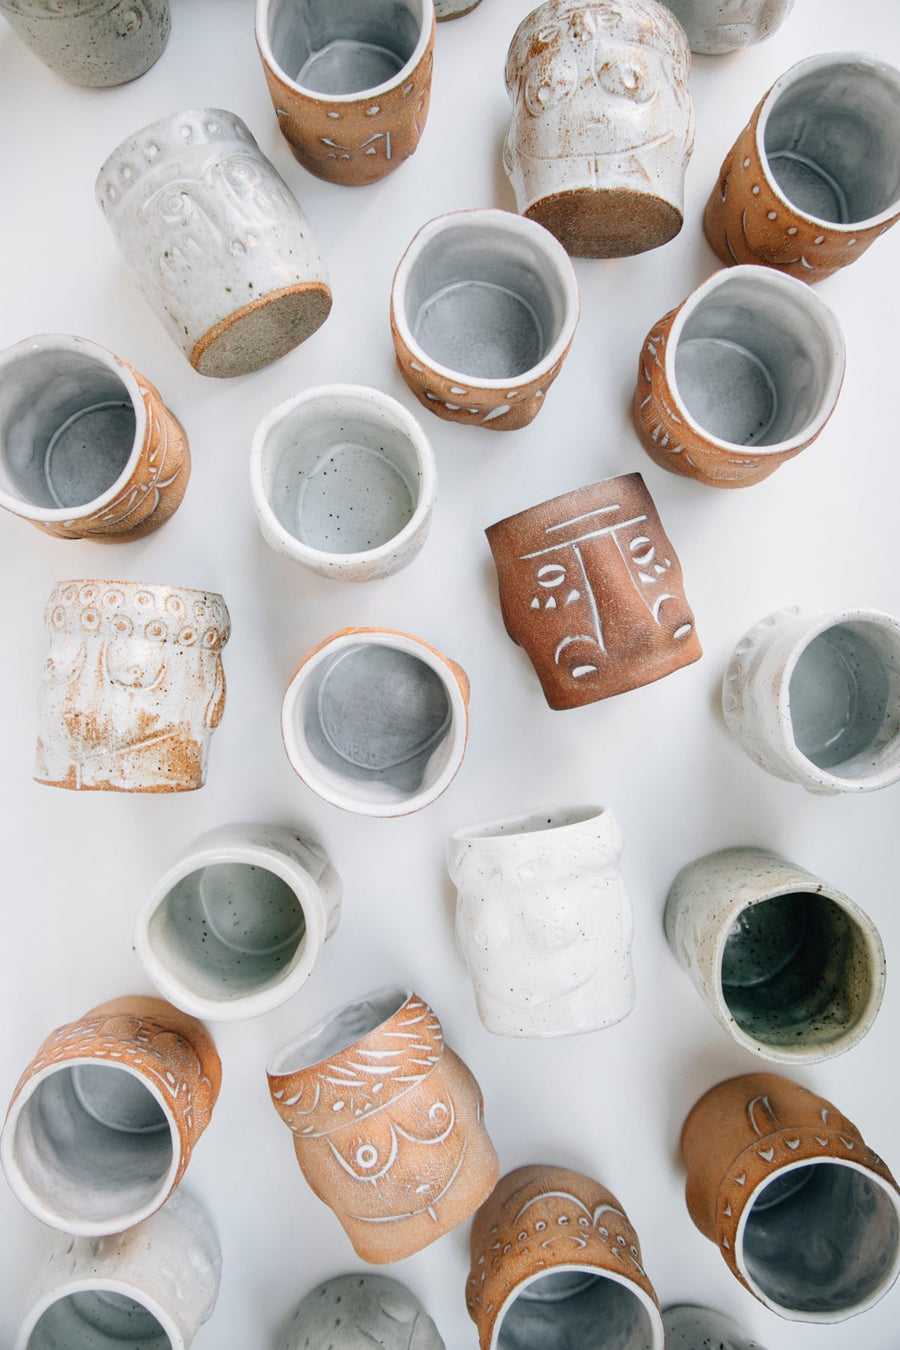 Handmade ceramic tiki cups made in Los Angeles. Each is entirely one of a kind. A collection of Tiki gods were created: each completely unique and handmade, ready to brighten a home or hold a favorite cocktail.